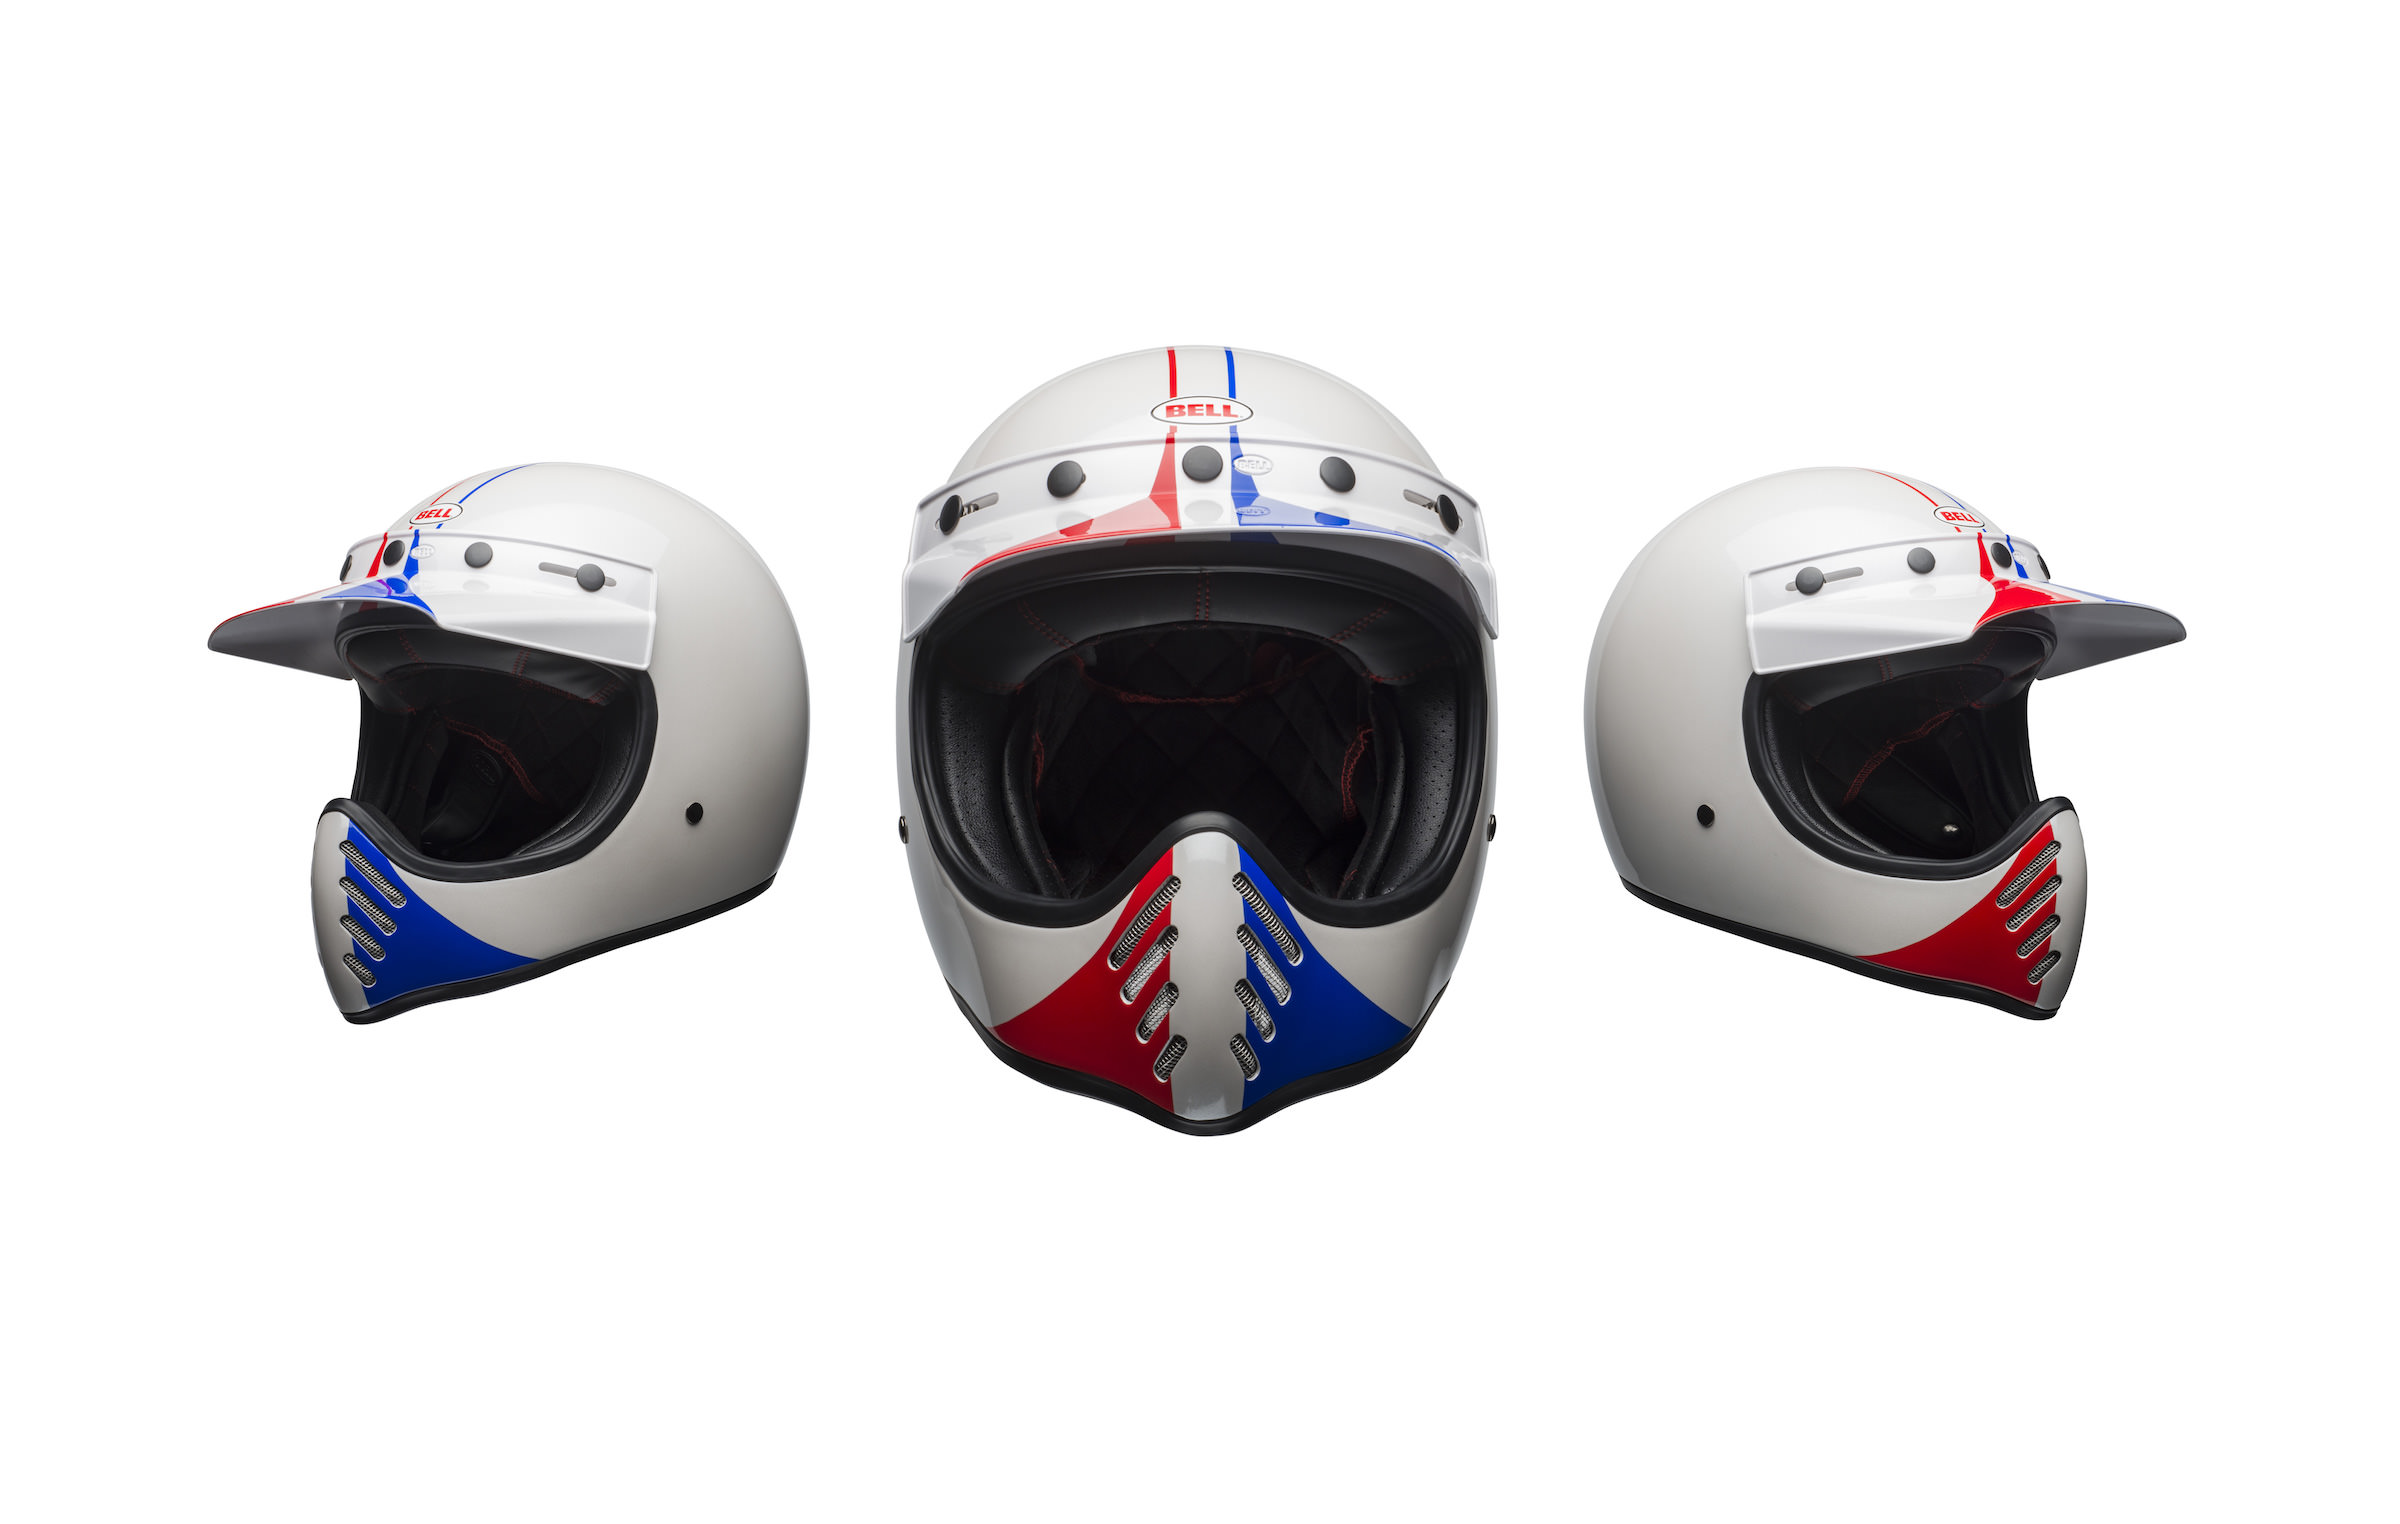 Bell Moto 3 Ace Cafe Gp 66 Helmet Modern Safety In A